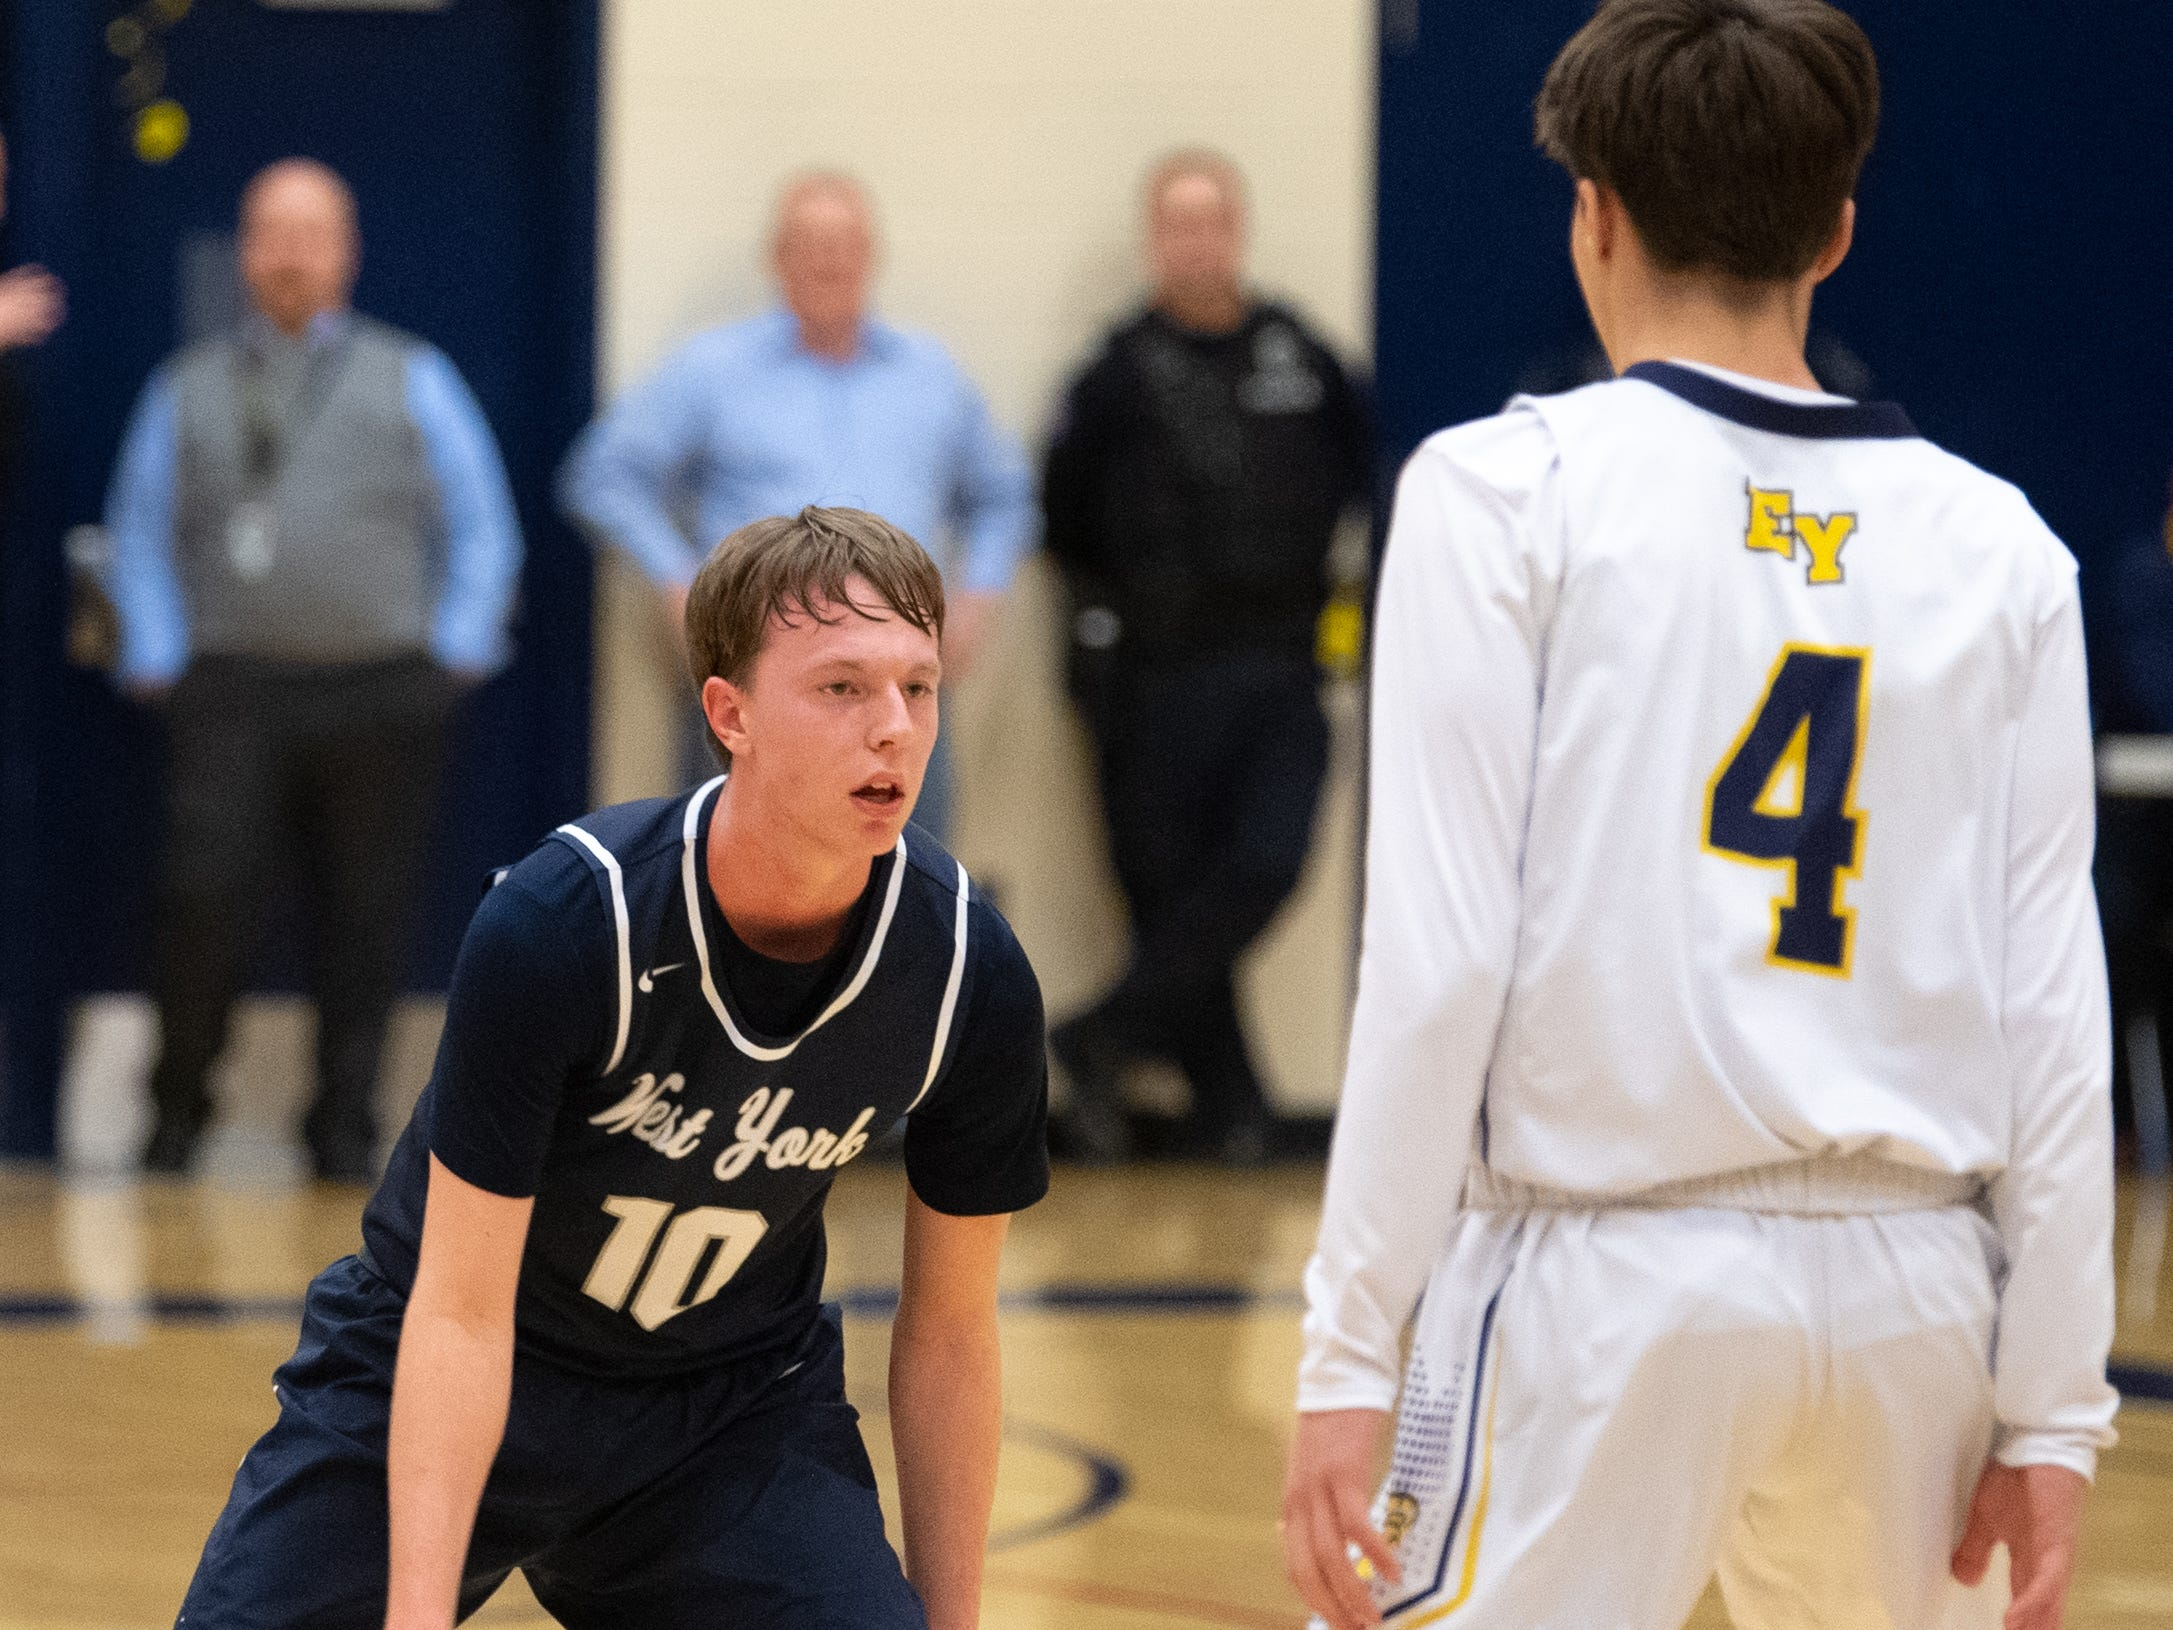 Corey Wise (10) sizes up Trevor Seitz (4) during the YAIAA boys' basketball game between Eastern York and West York, Friday, January 25, 2019 at Eastern York High School. The Golden Knights defeated the Bulldogs 59 to 55.